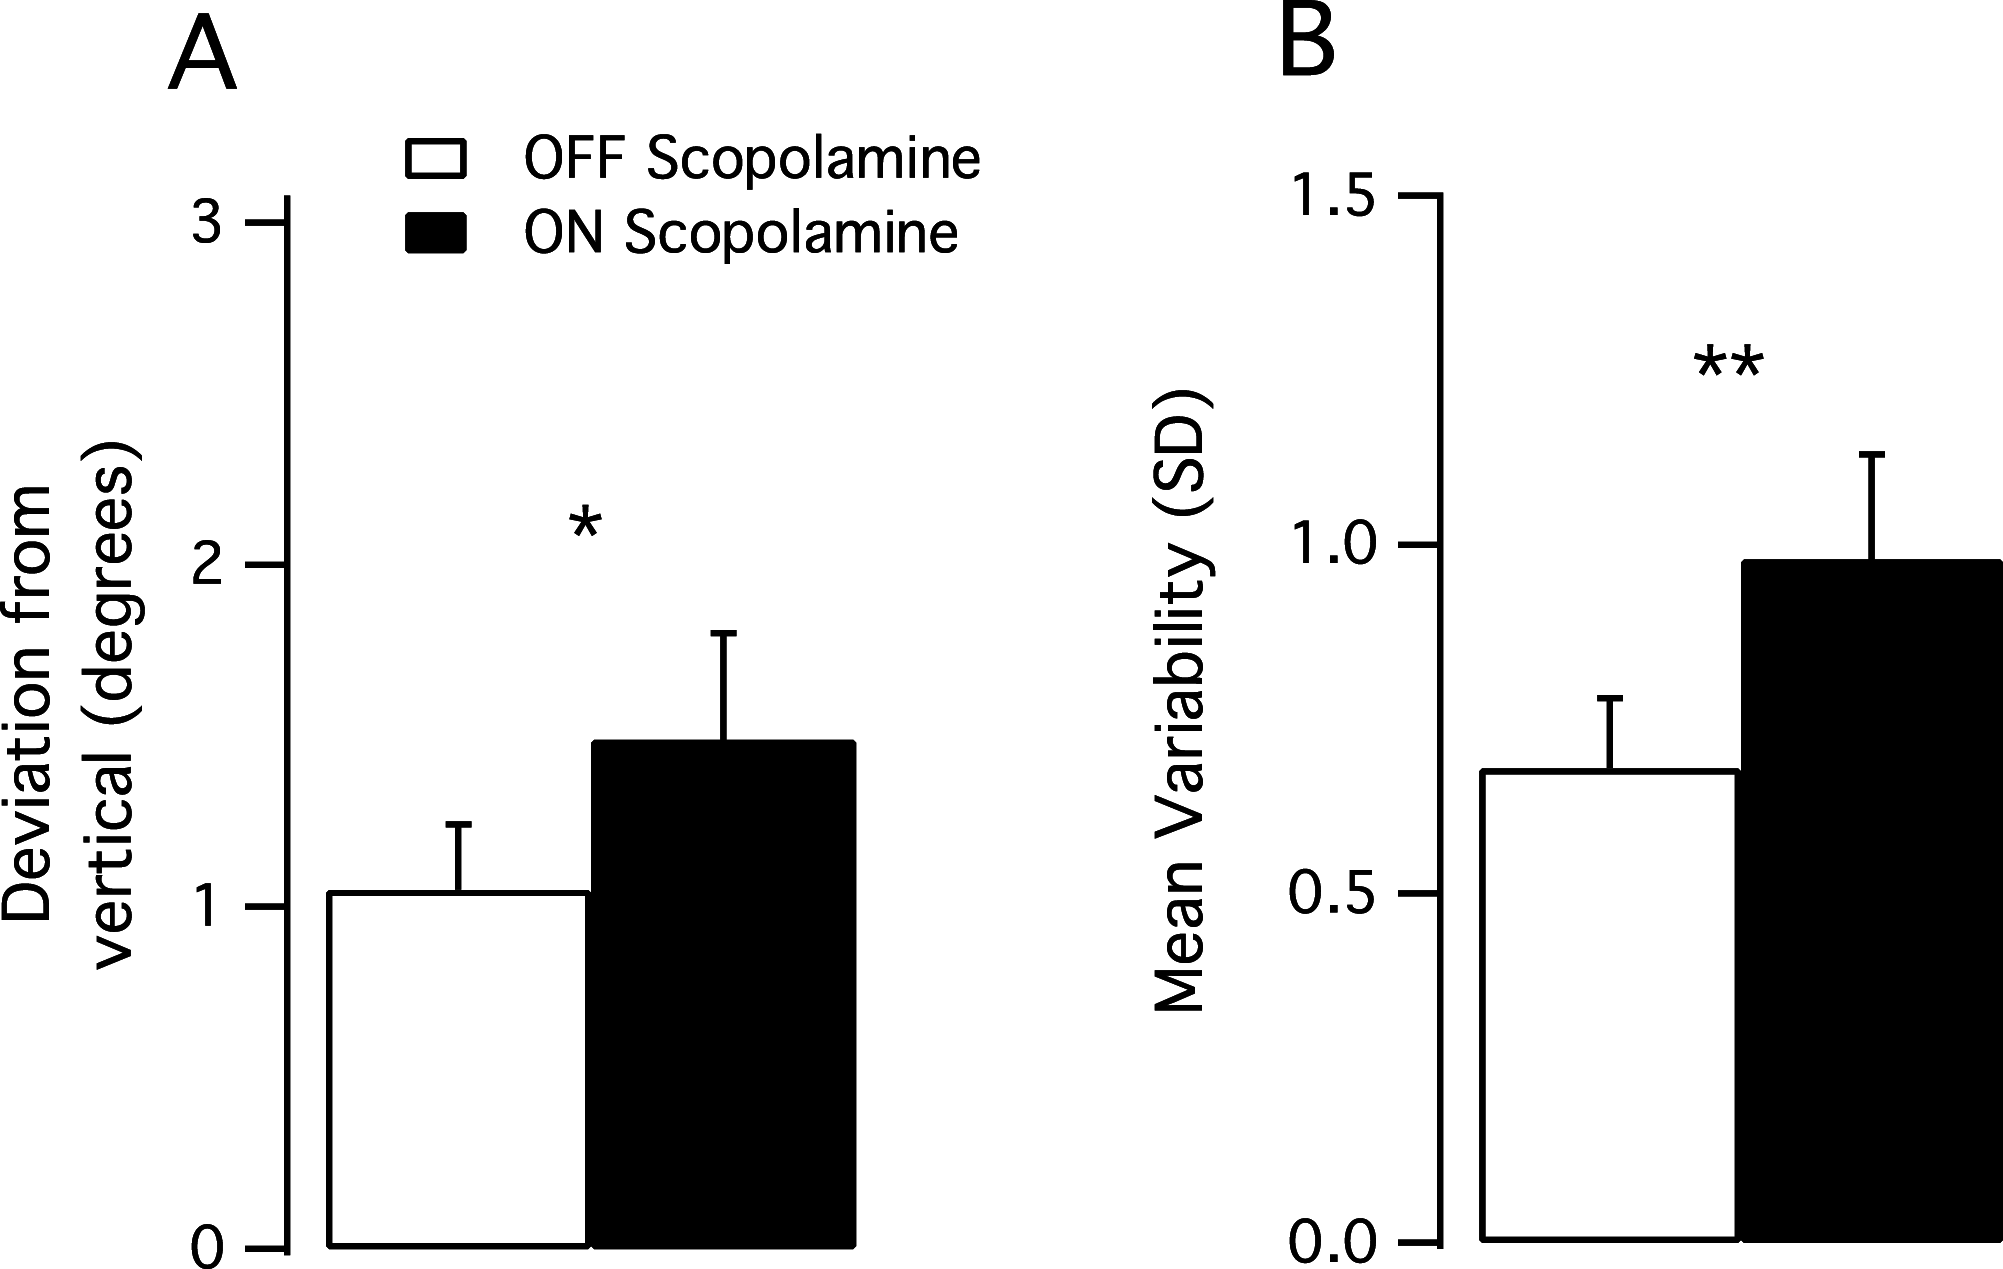 The influence of scopolamine on motor control and